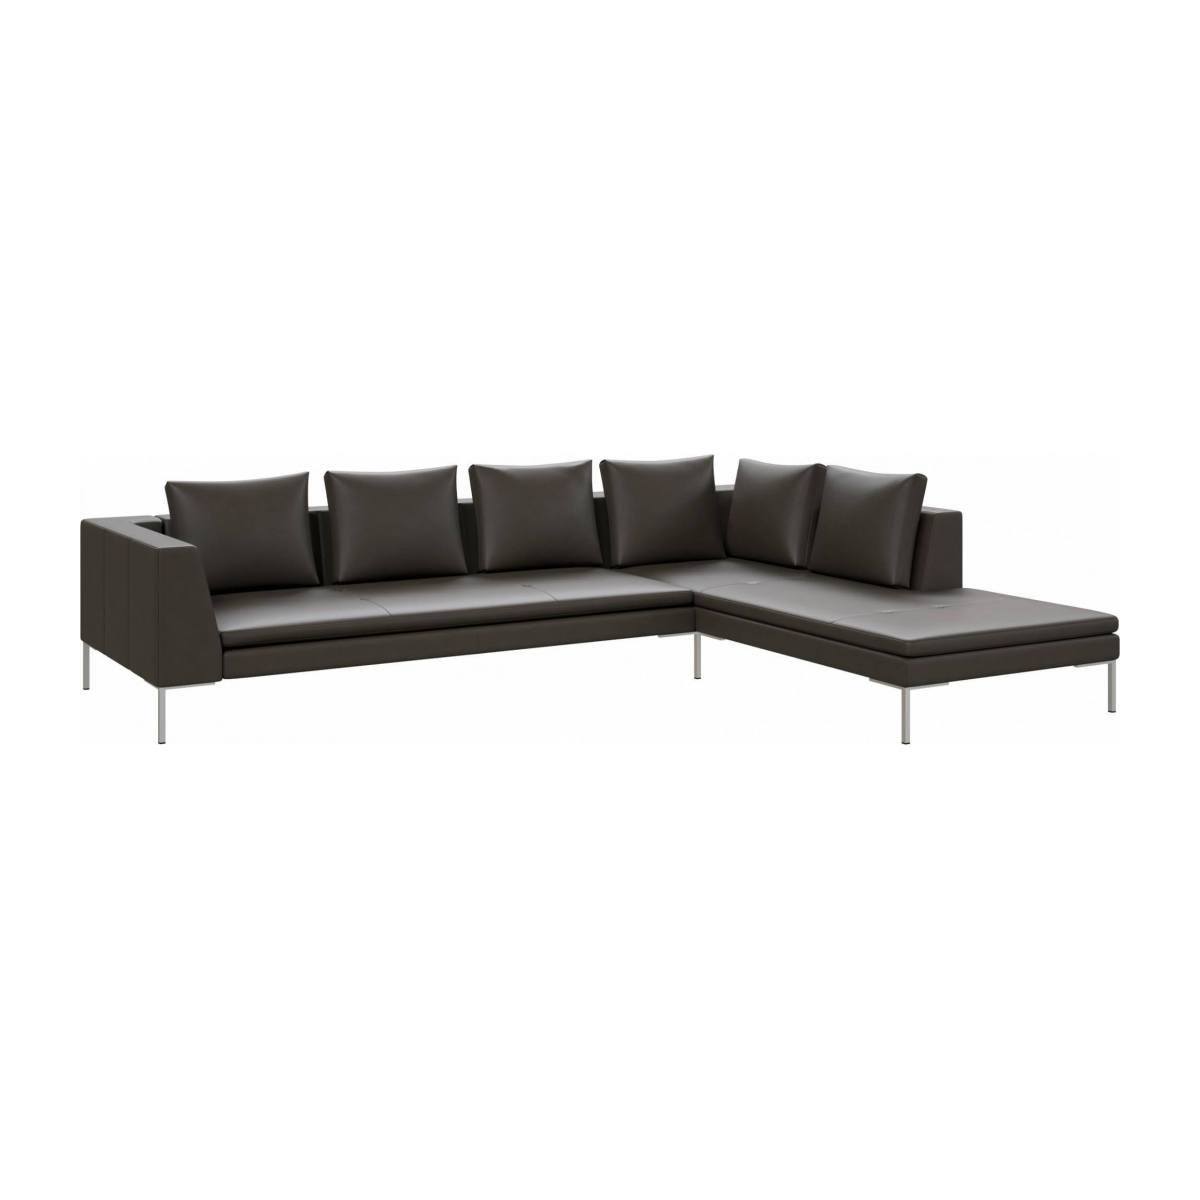 3 seater sofa with chaise longue on the right in Savoy semi-aniline leather, grey  n°2